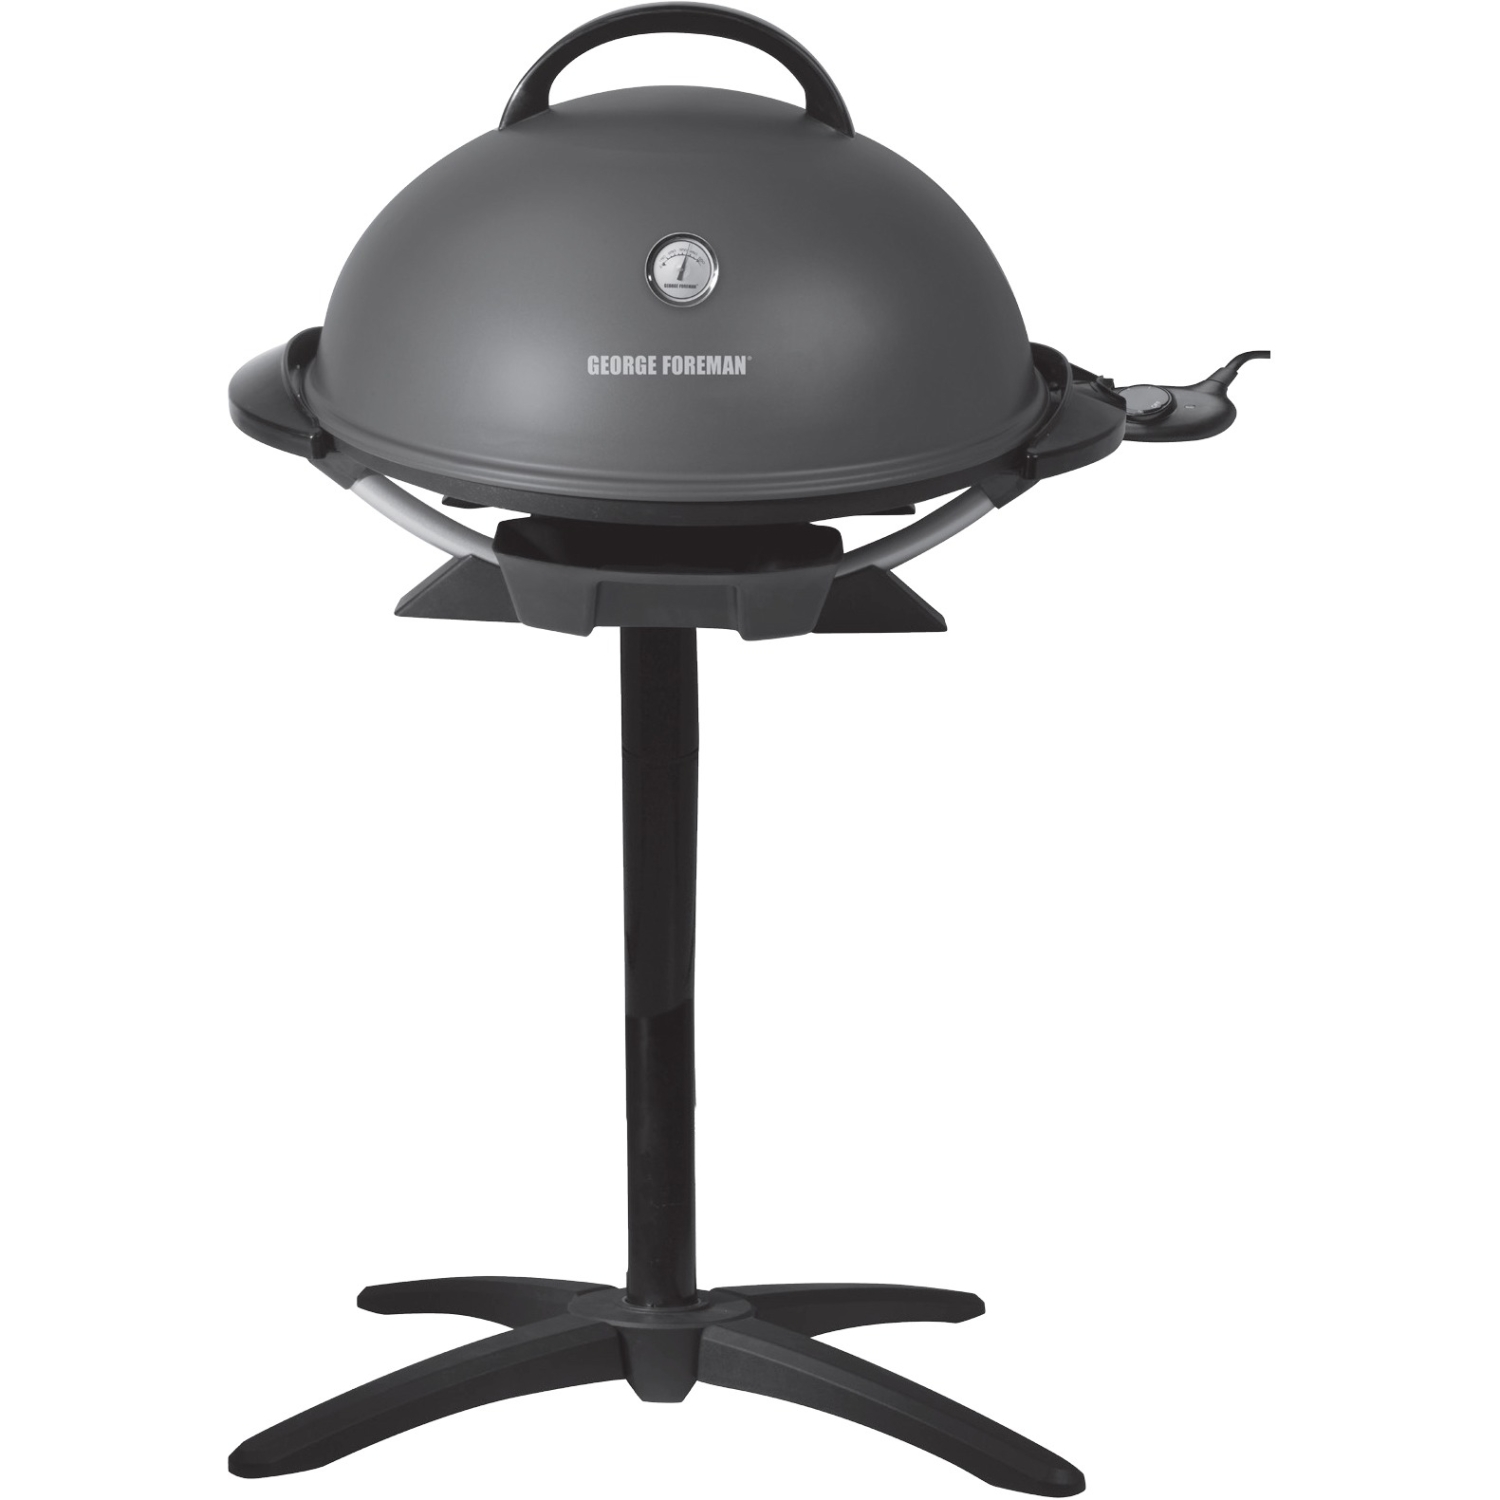 Marvelous George Foreman 15 Serving Indoor/outdoor Electric Grill   Gun Metal  (gfo3320gm)   Walmart.com